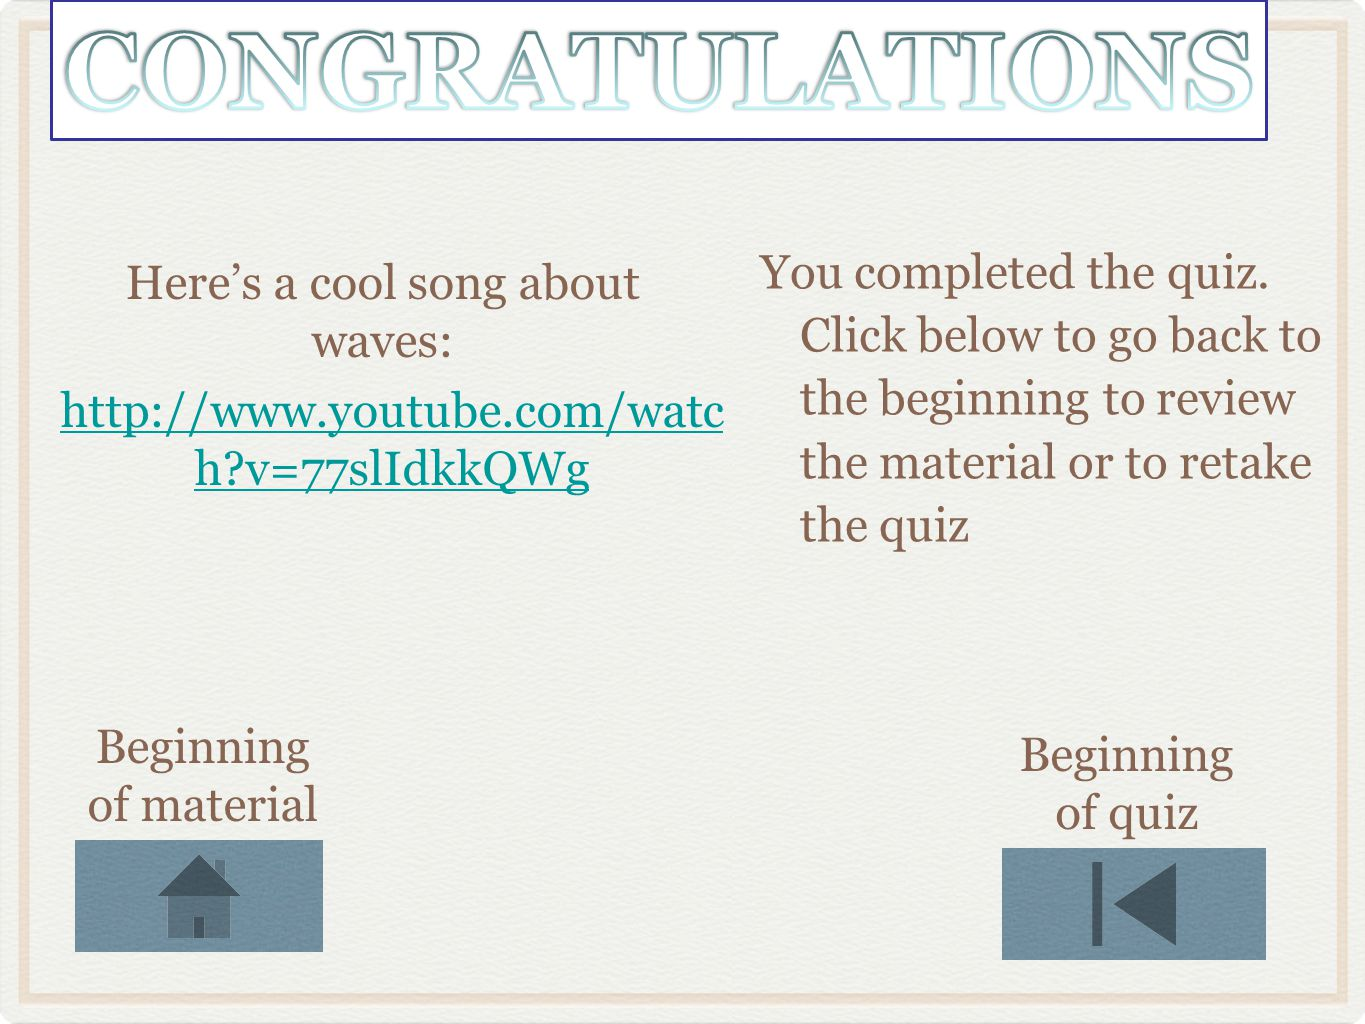 Here's a cool song about waves: